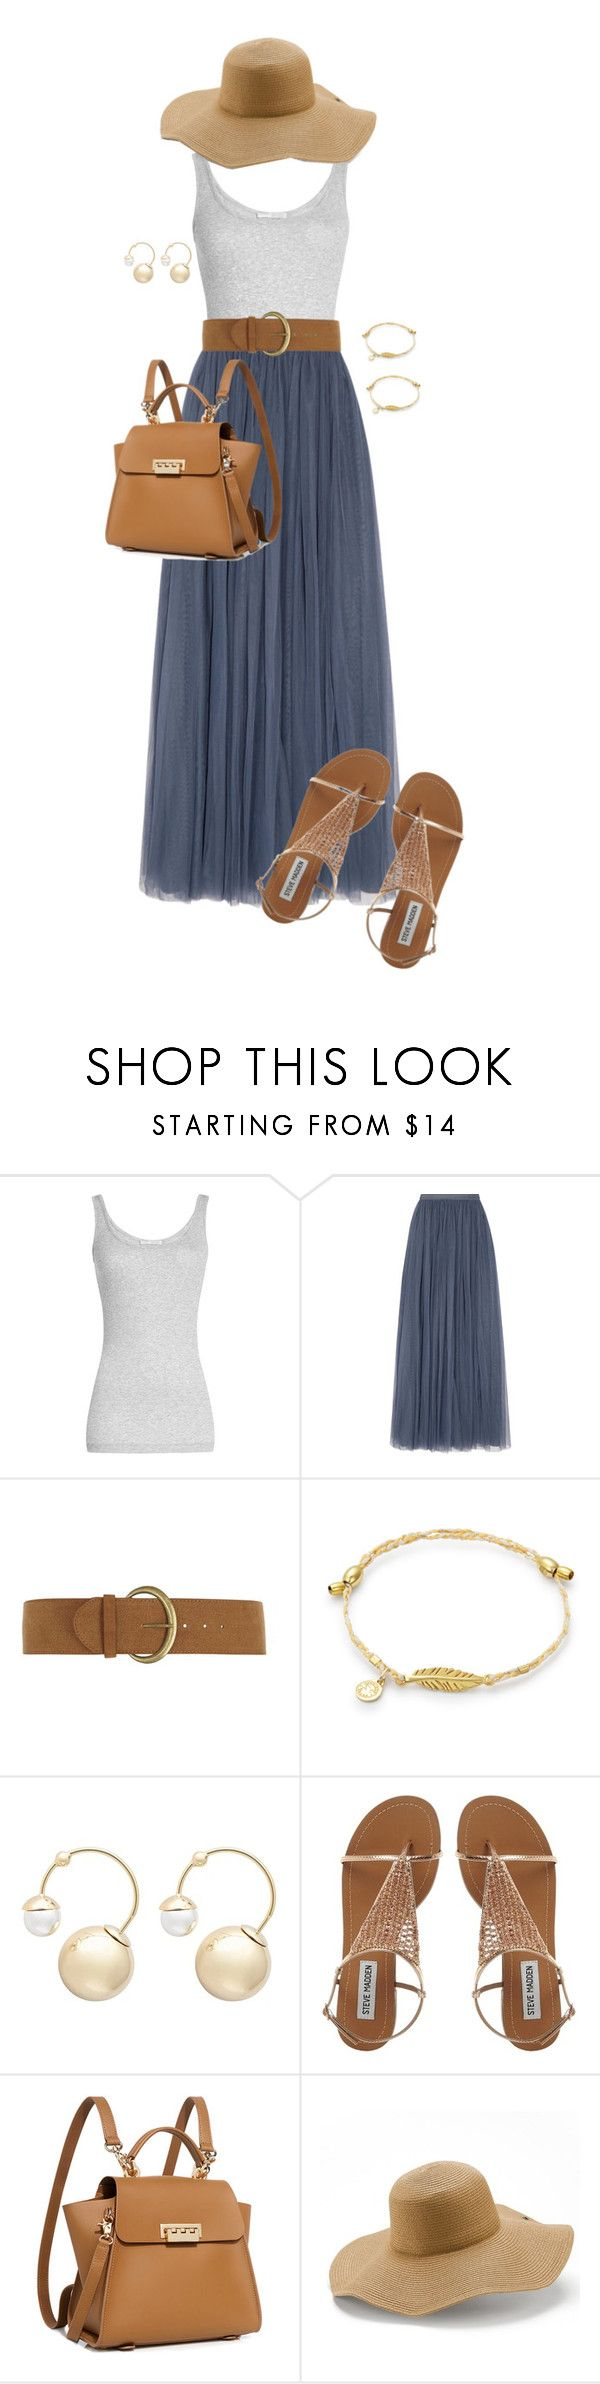 """""""Beach Stroll"""" by ccoss ❤ liked on Polyvore featuring Vince, Needle & Thread, Dorothy Perkins, Witchery, ZAC Zac Posen and Peter Grimm"""